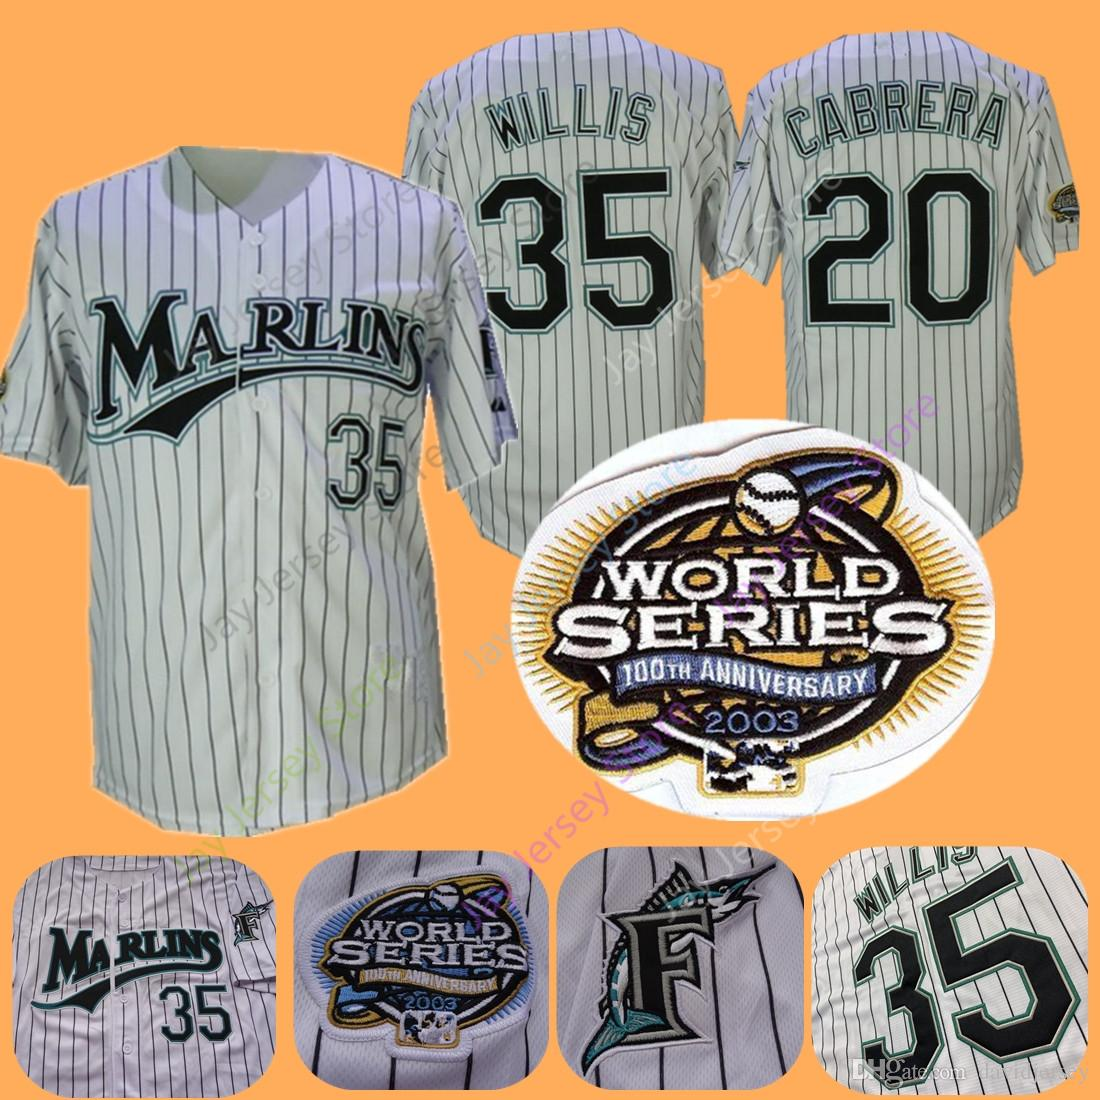 hot sale online e4973 3defd Florida Marlins Jerseys 2003 WS World Series 35 Dontrelle Willis 20 Miguel  Cabrera Jersey White Pinstripe